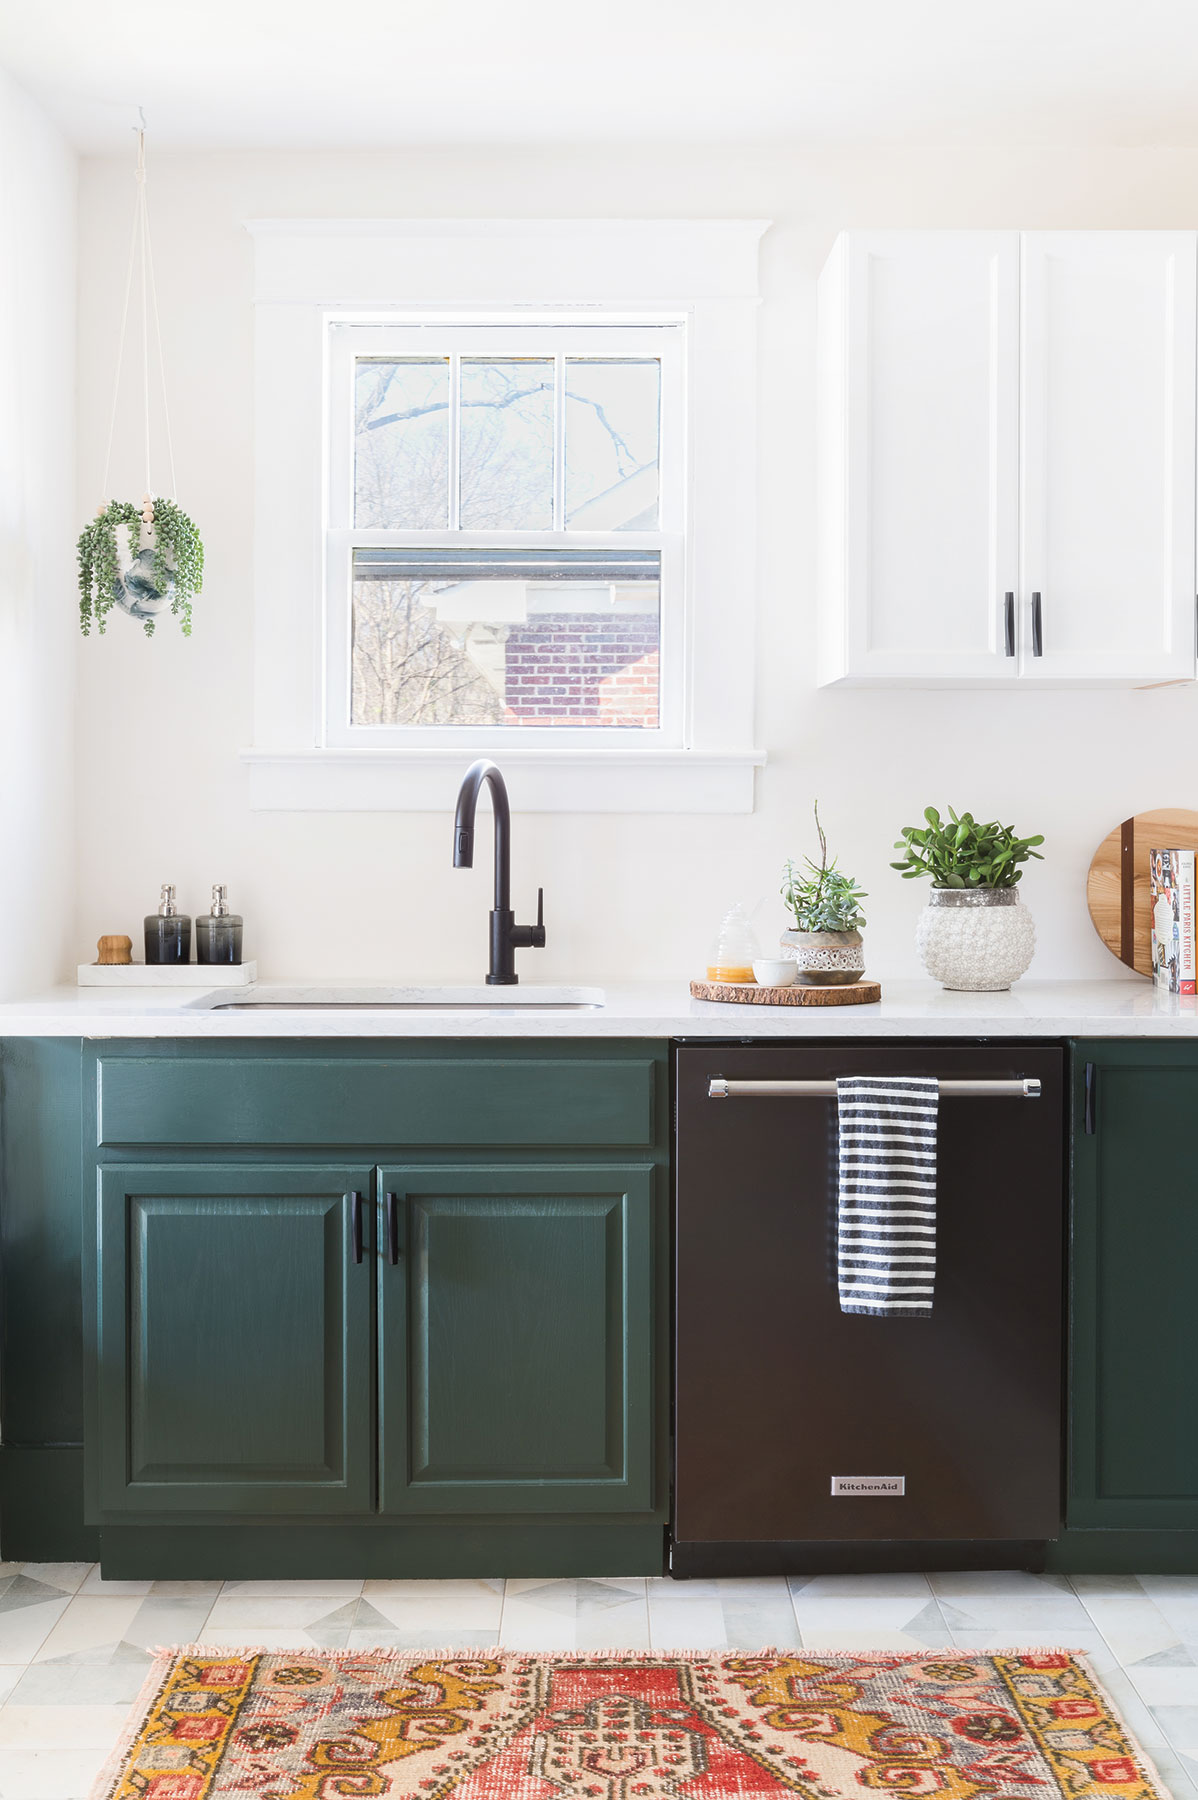 7 Kitchen Cabinet Colors We Canu0027t Stop Swooning Over